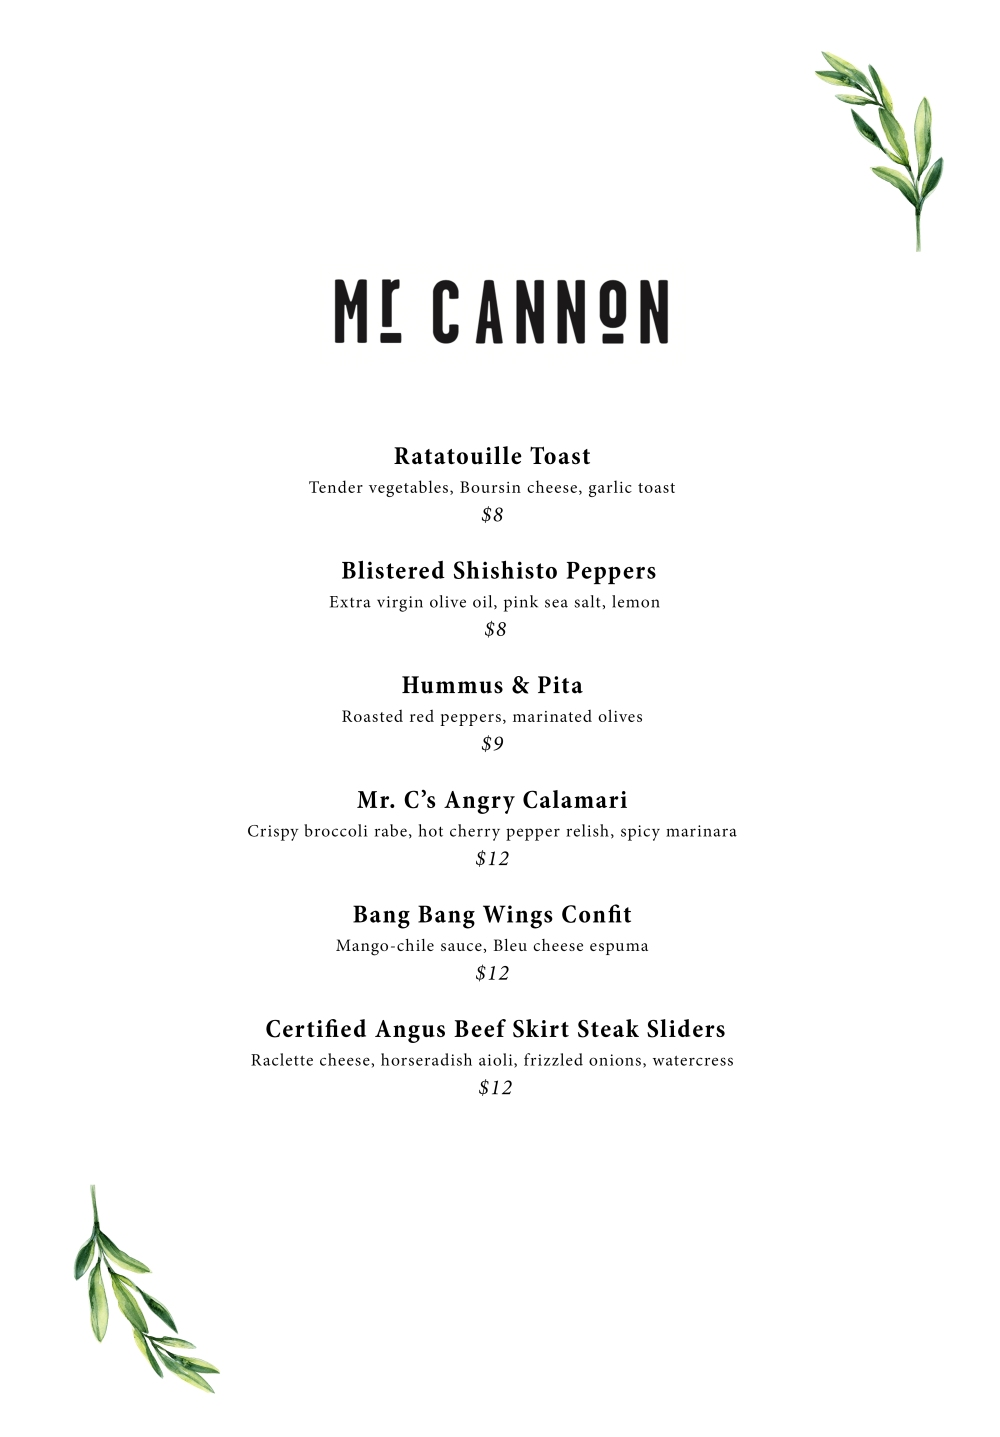 20180116 mr cannon food menu